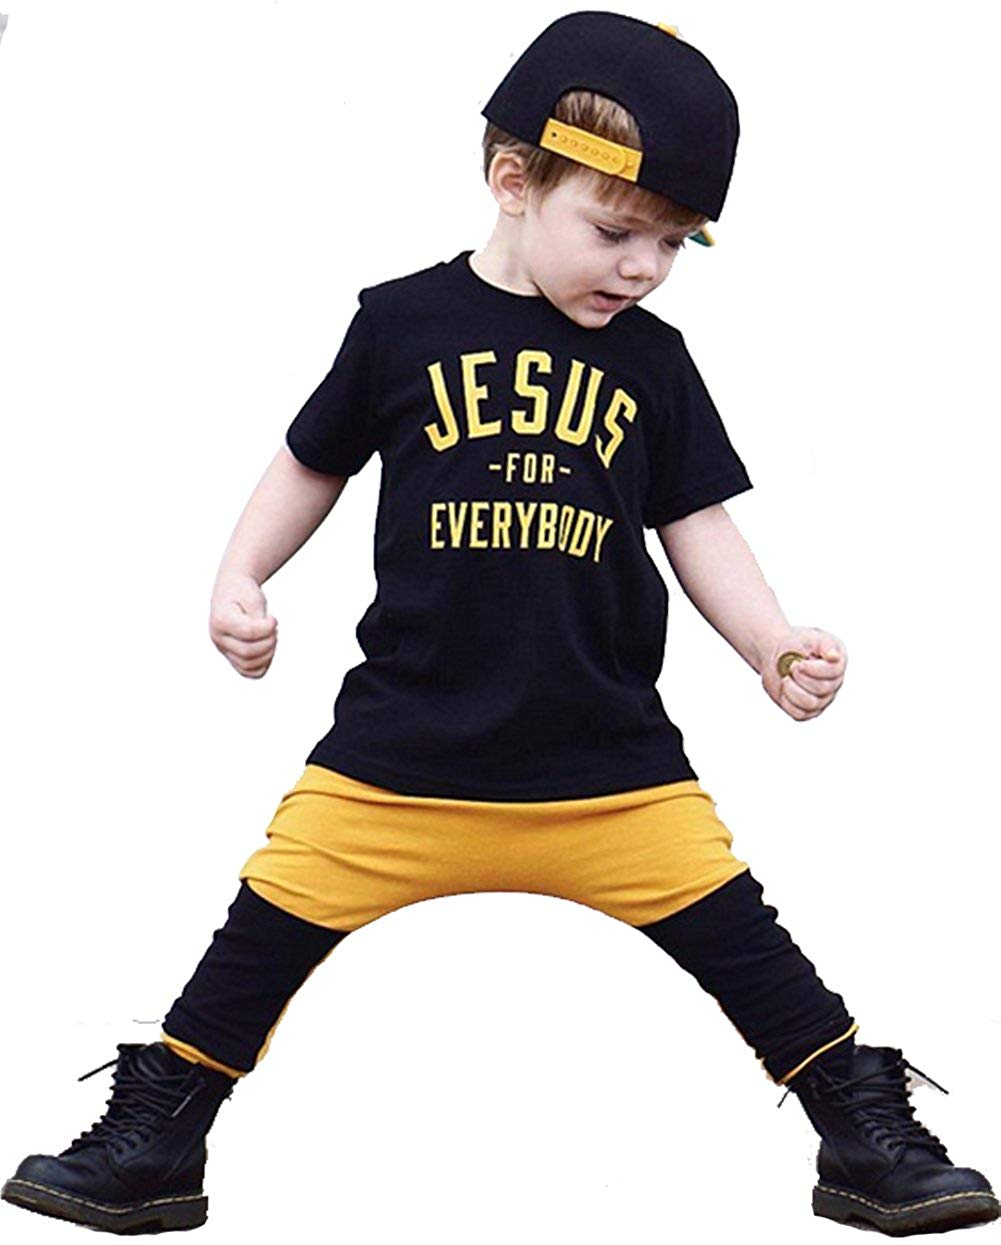 UNIQUEONE Baby Boys Jesus For Everybooy Letters Print T-Shirt Tops Patchwork Pant Sets